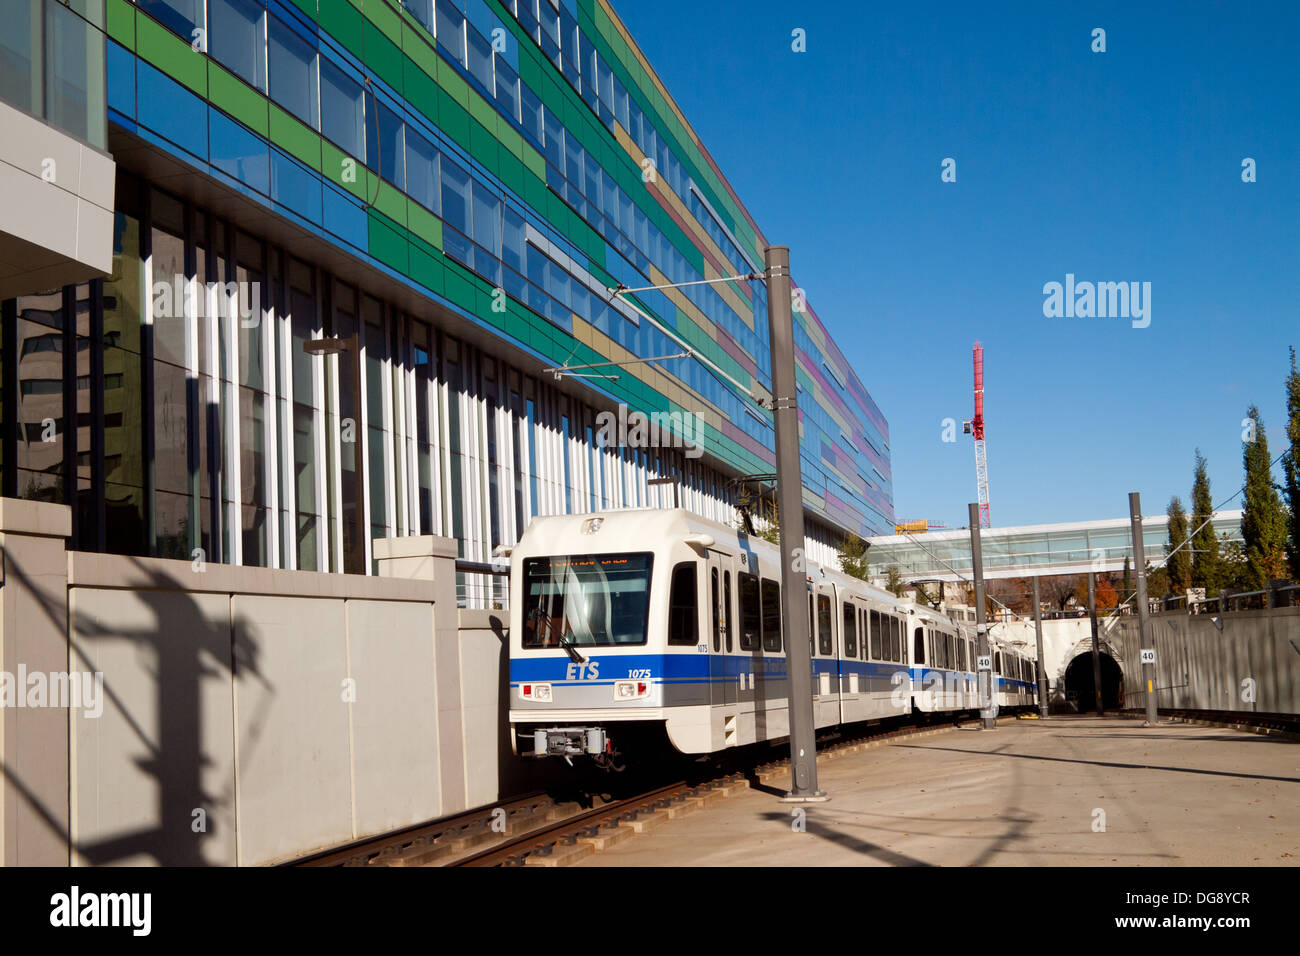 An Edmonton LRT train pulls into Health Sciences Station in front of the Edmonton Clinic Health Academy in Edmonton, Canada. - Stock Image